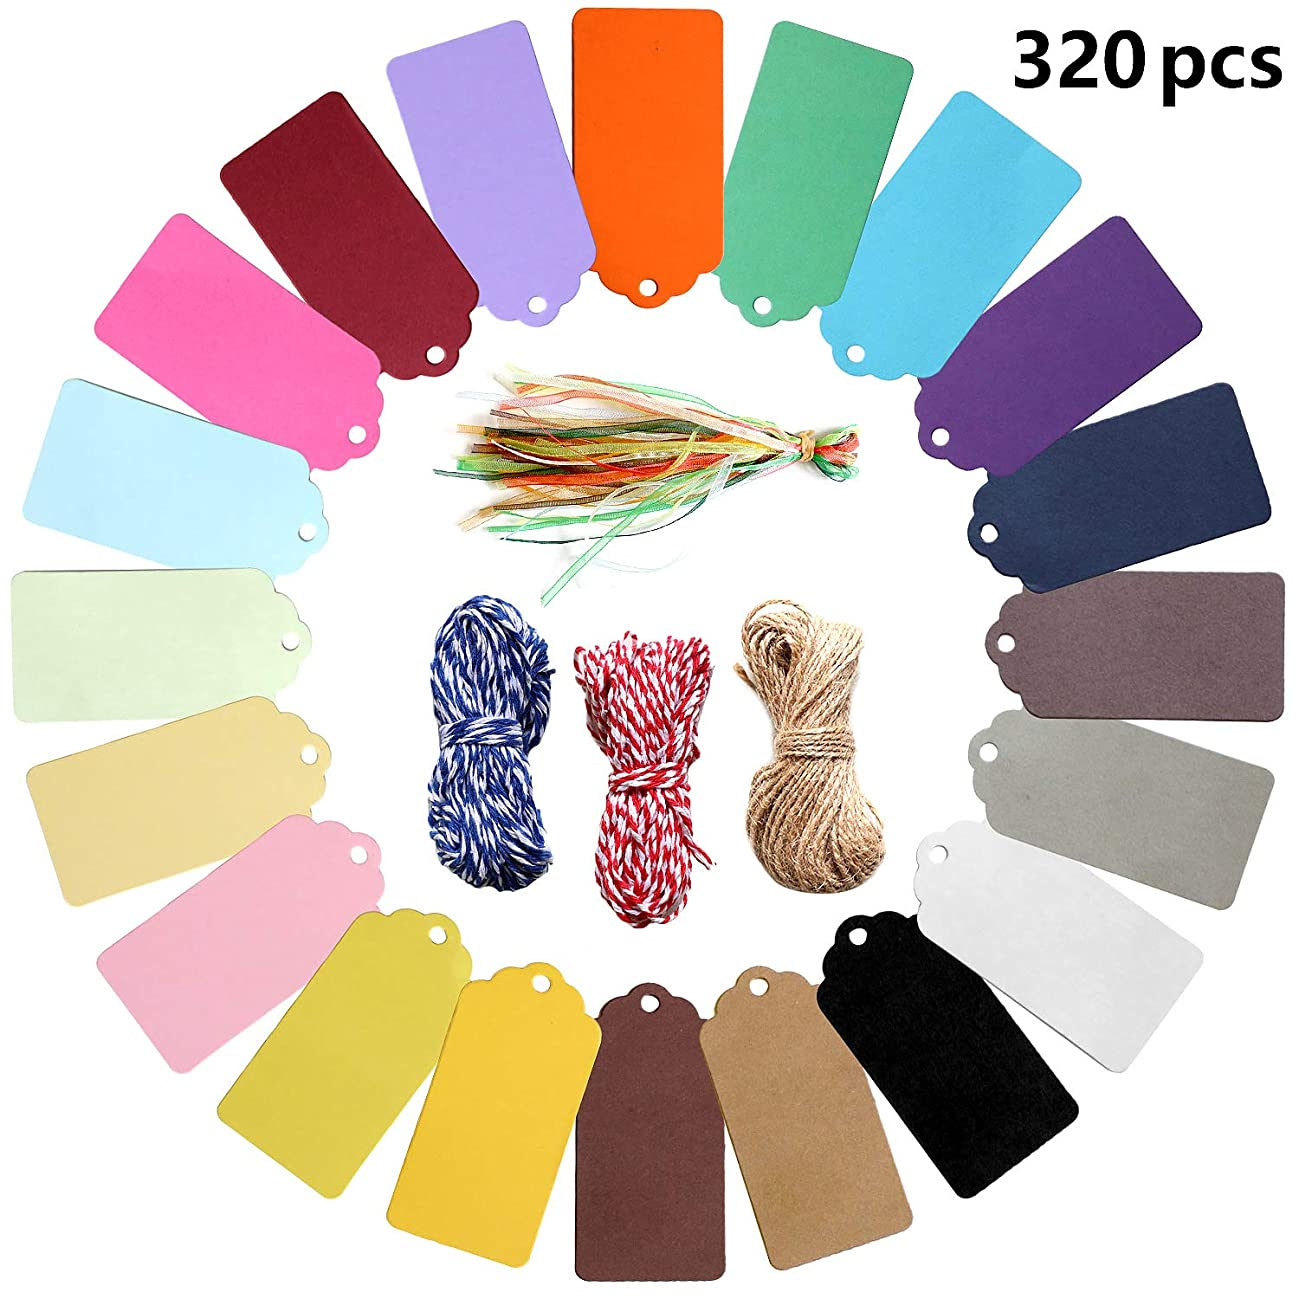 320 PCS Gift Tags Sign with String,Party Favor Paper Kraft Tags Treats Tags Scrapbook Cards Escort Card,Name Place Cards Hanging Sign Tags for Decoration Gifts,Arts & Crafts